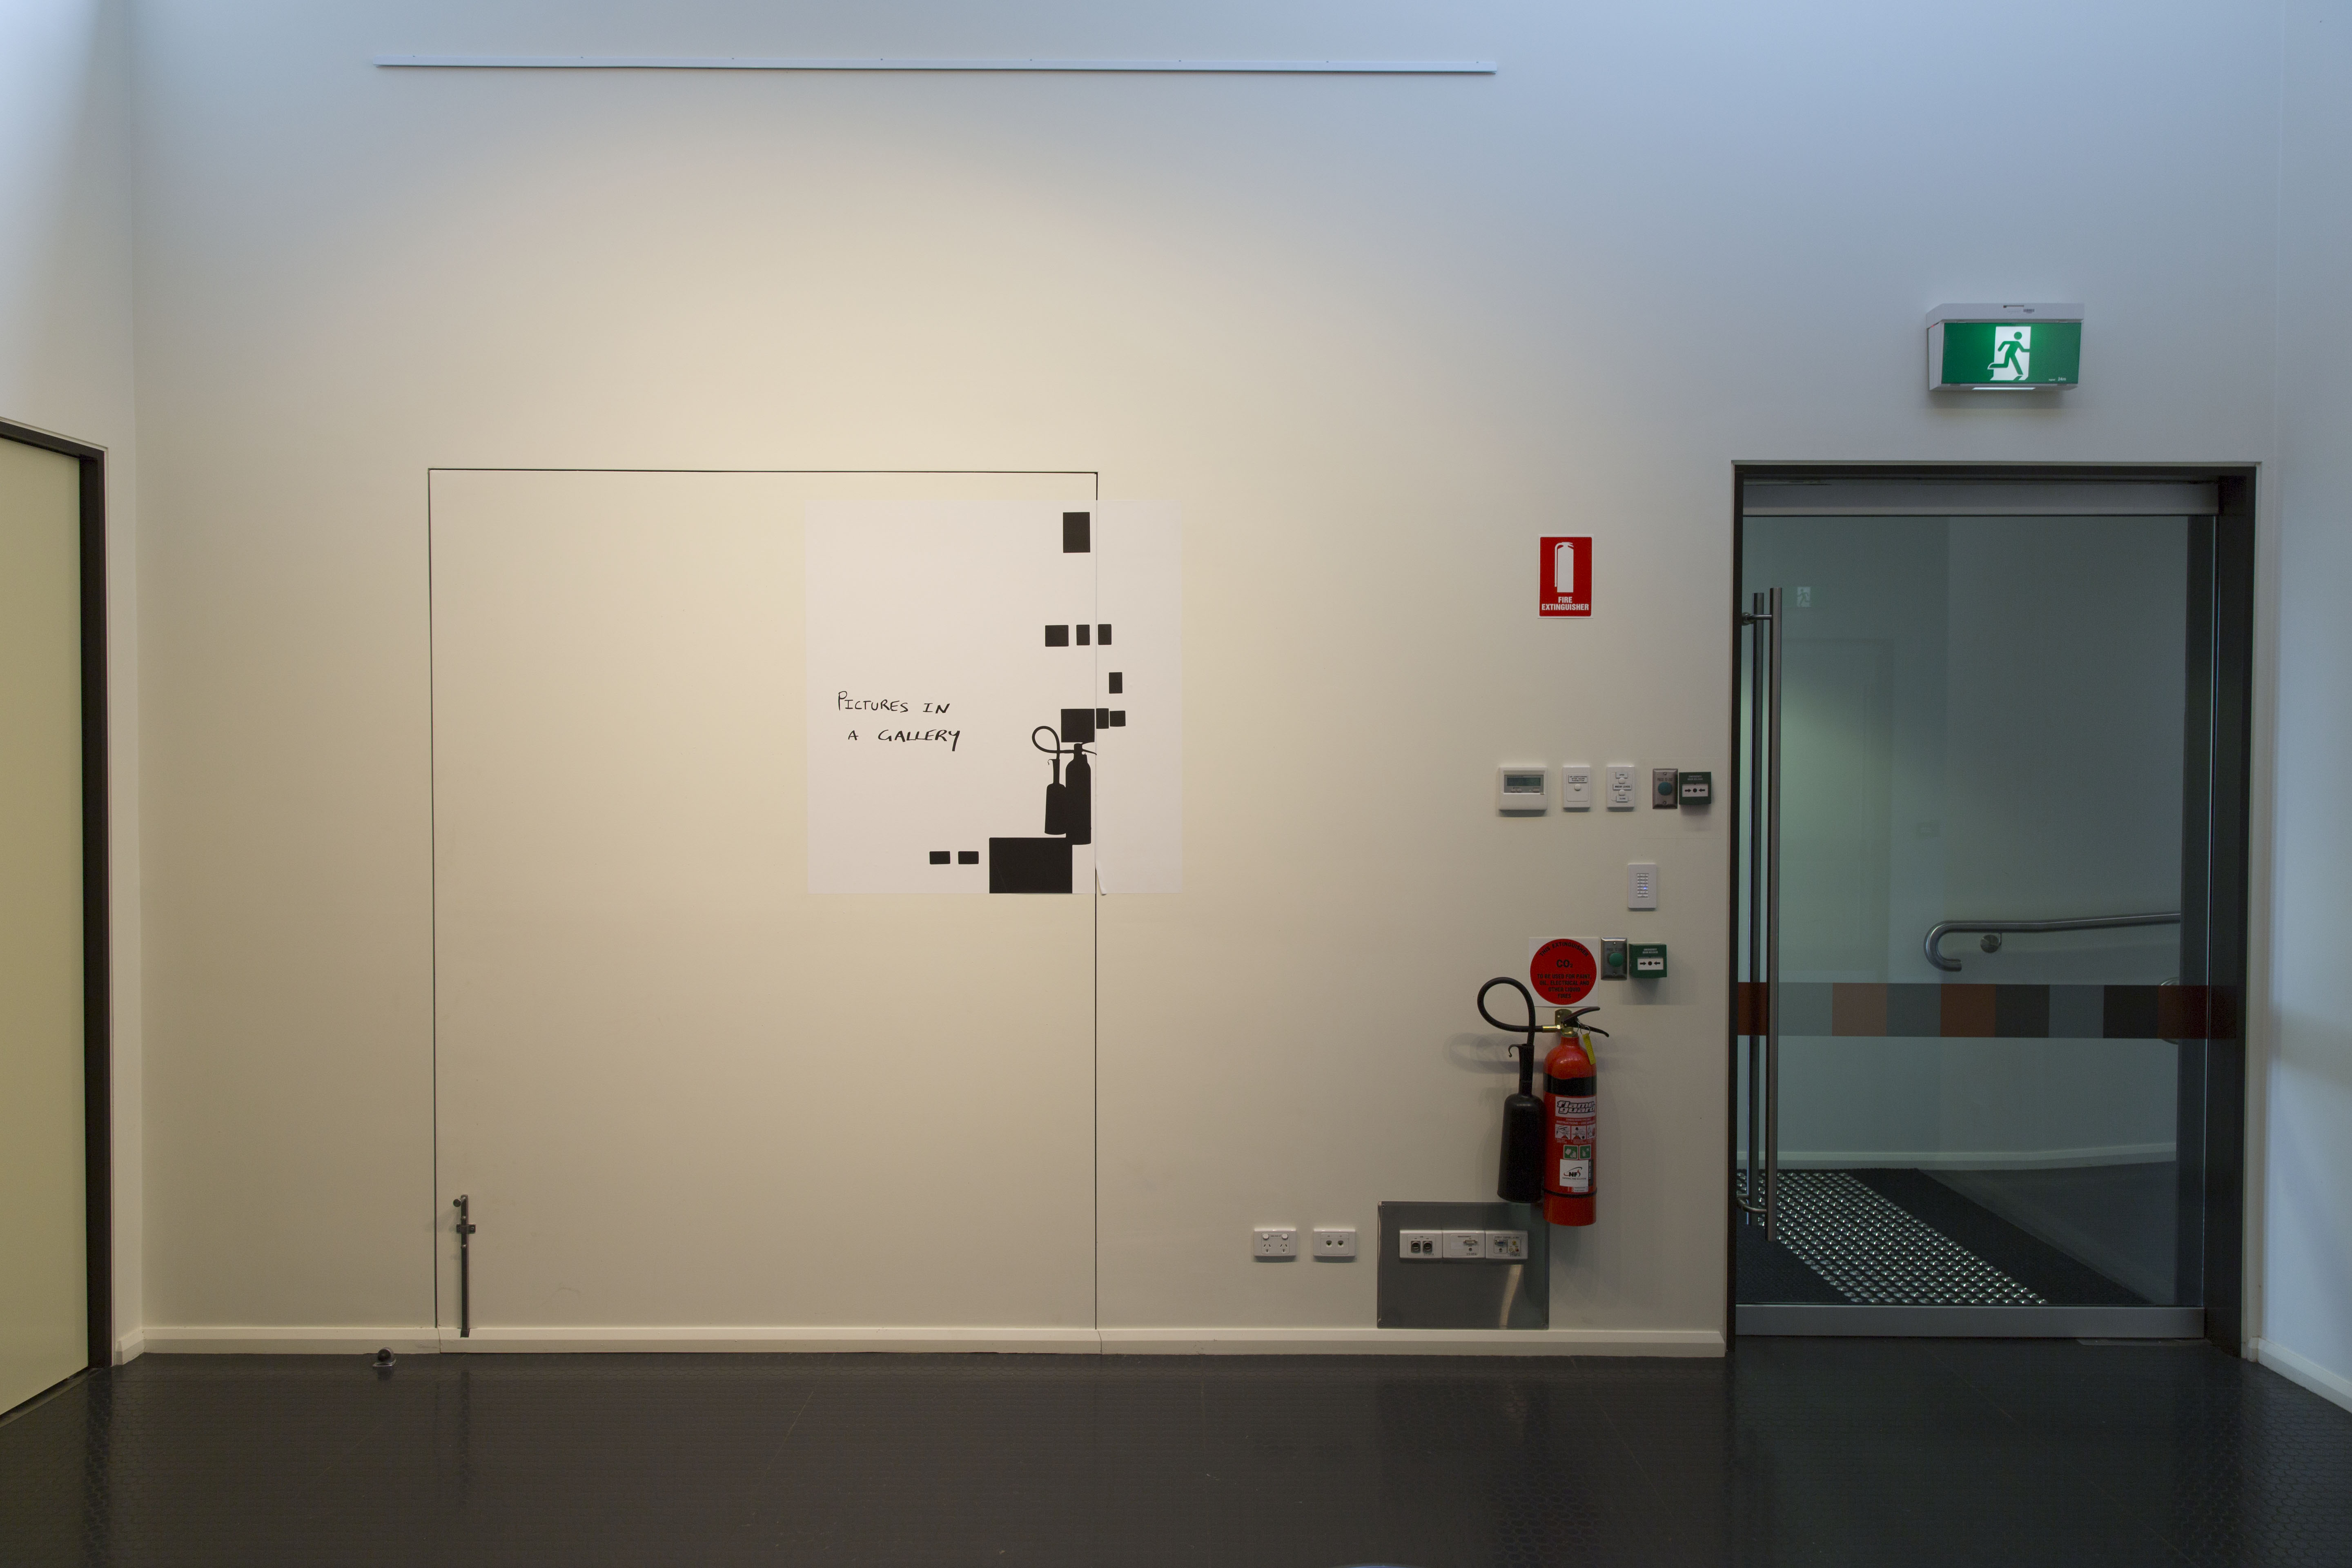 """Figure 26. Exhibition """"Picutres in a Gallery, curated by Jamie Holcombe 2013. Gallop Gallery, Charles Sturt University, Wagga Wagga. Digital photographs, hexachrome print on phototex"""